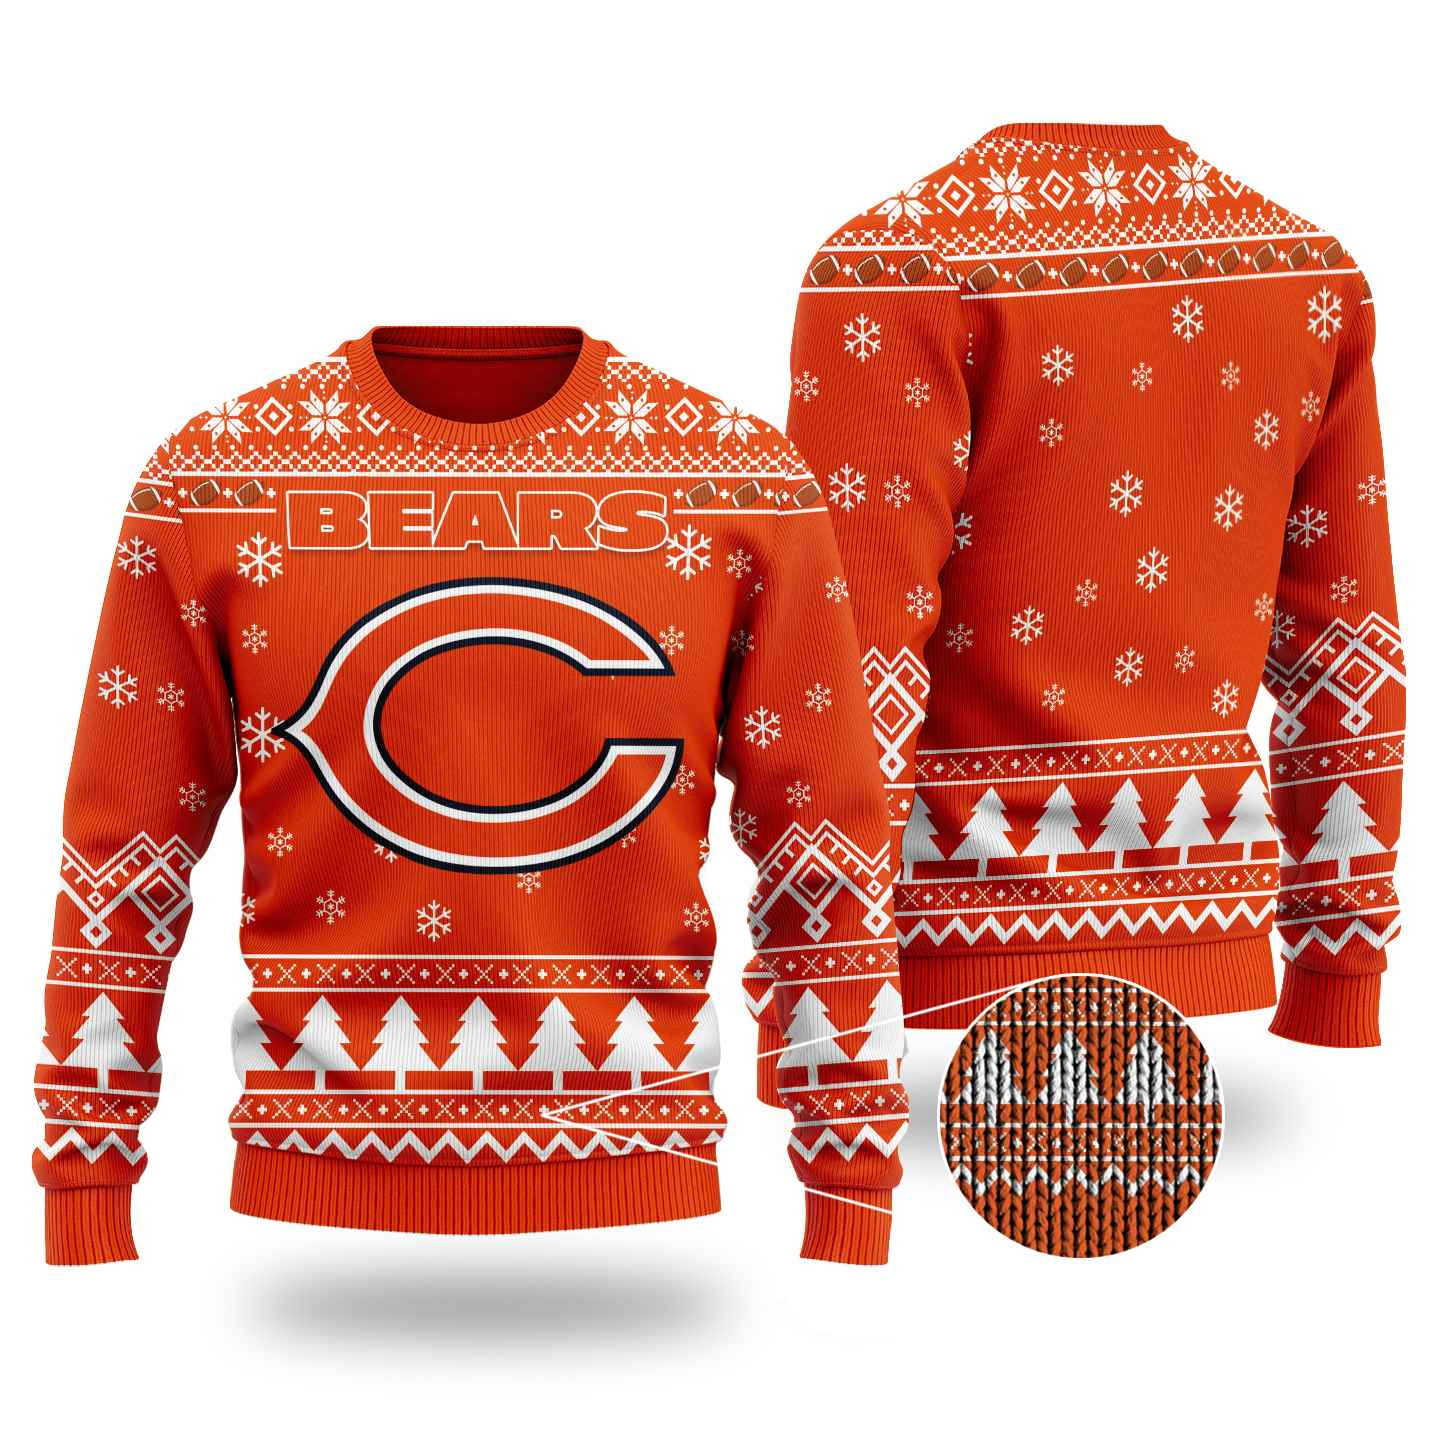 Nfl Chicago Bears Chibi Ugly Christmas Sweater Wool Material